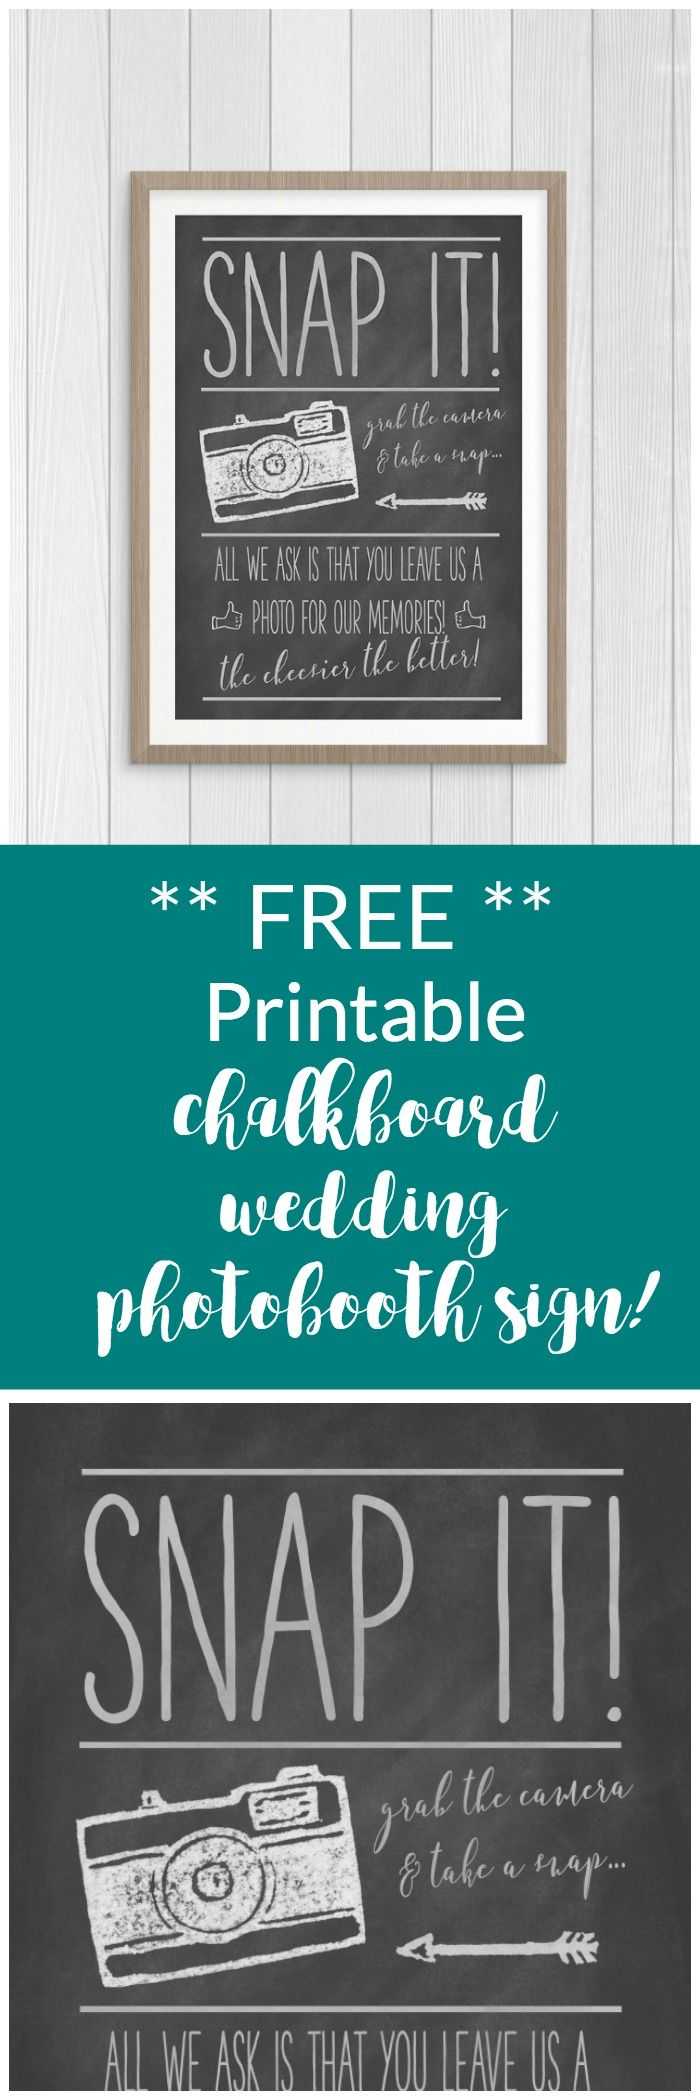 Free Chalkboard Wedding Photo Guest Book Sign